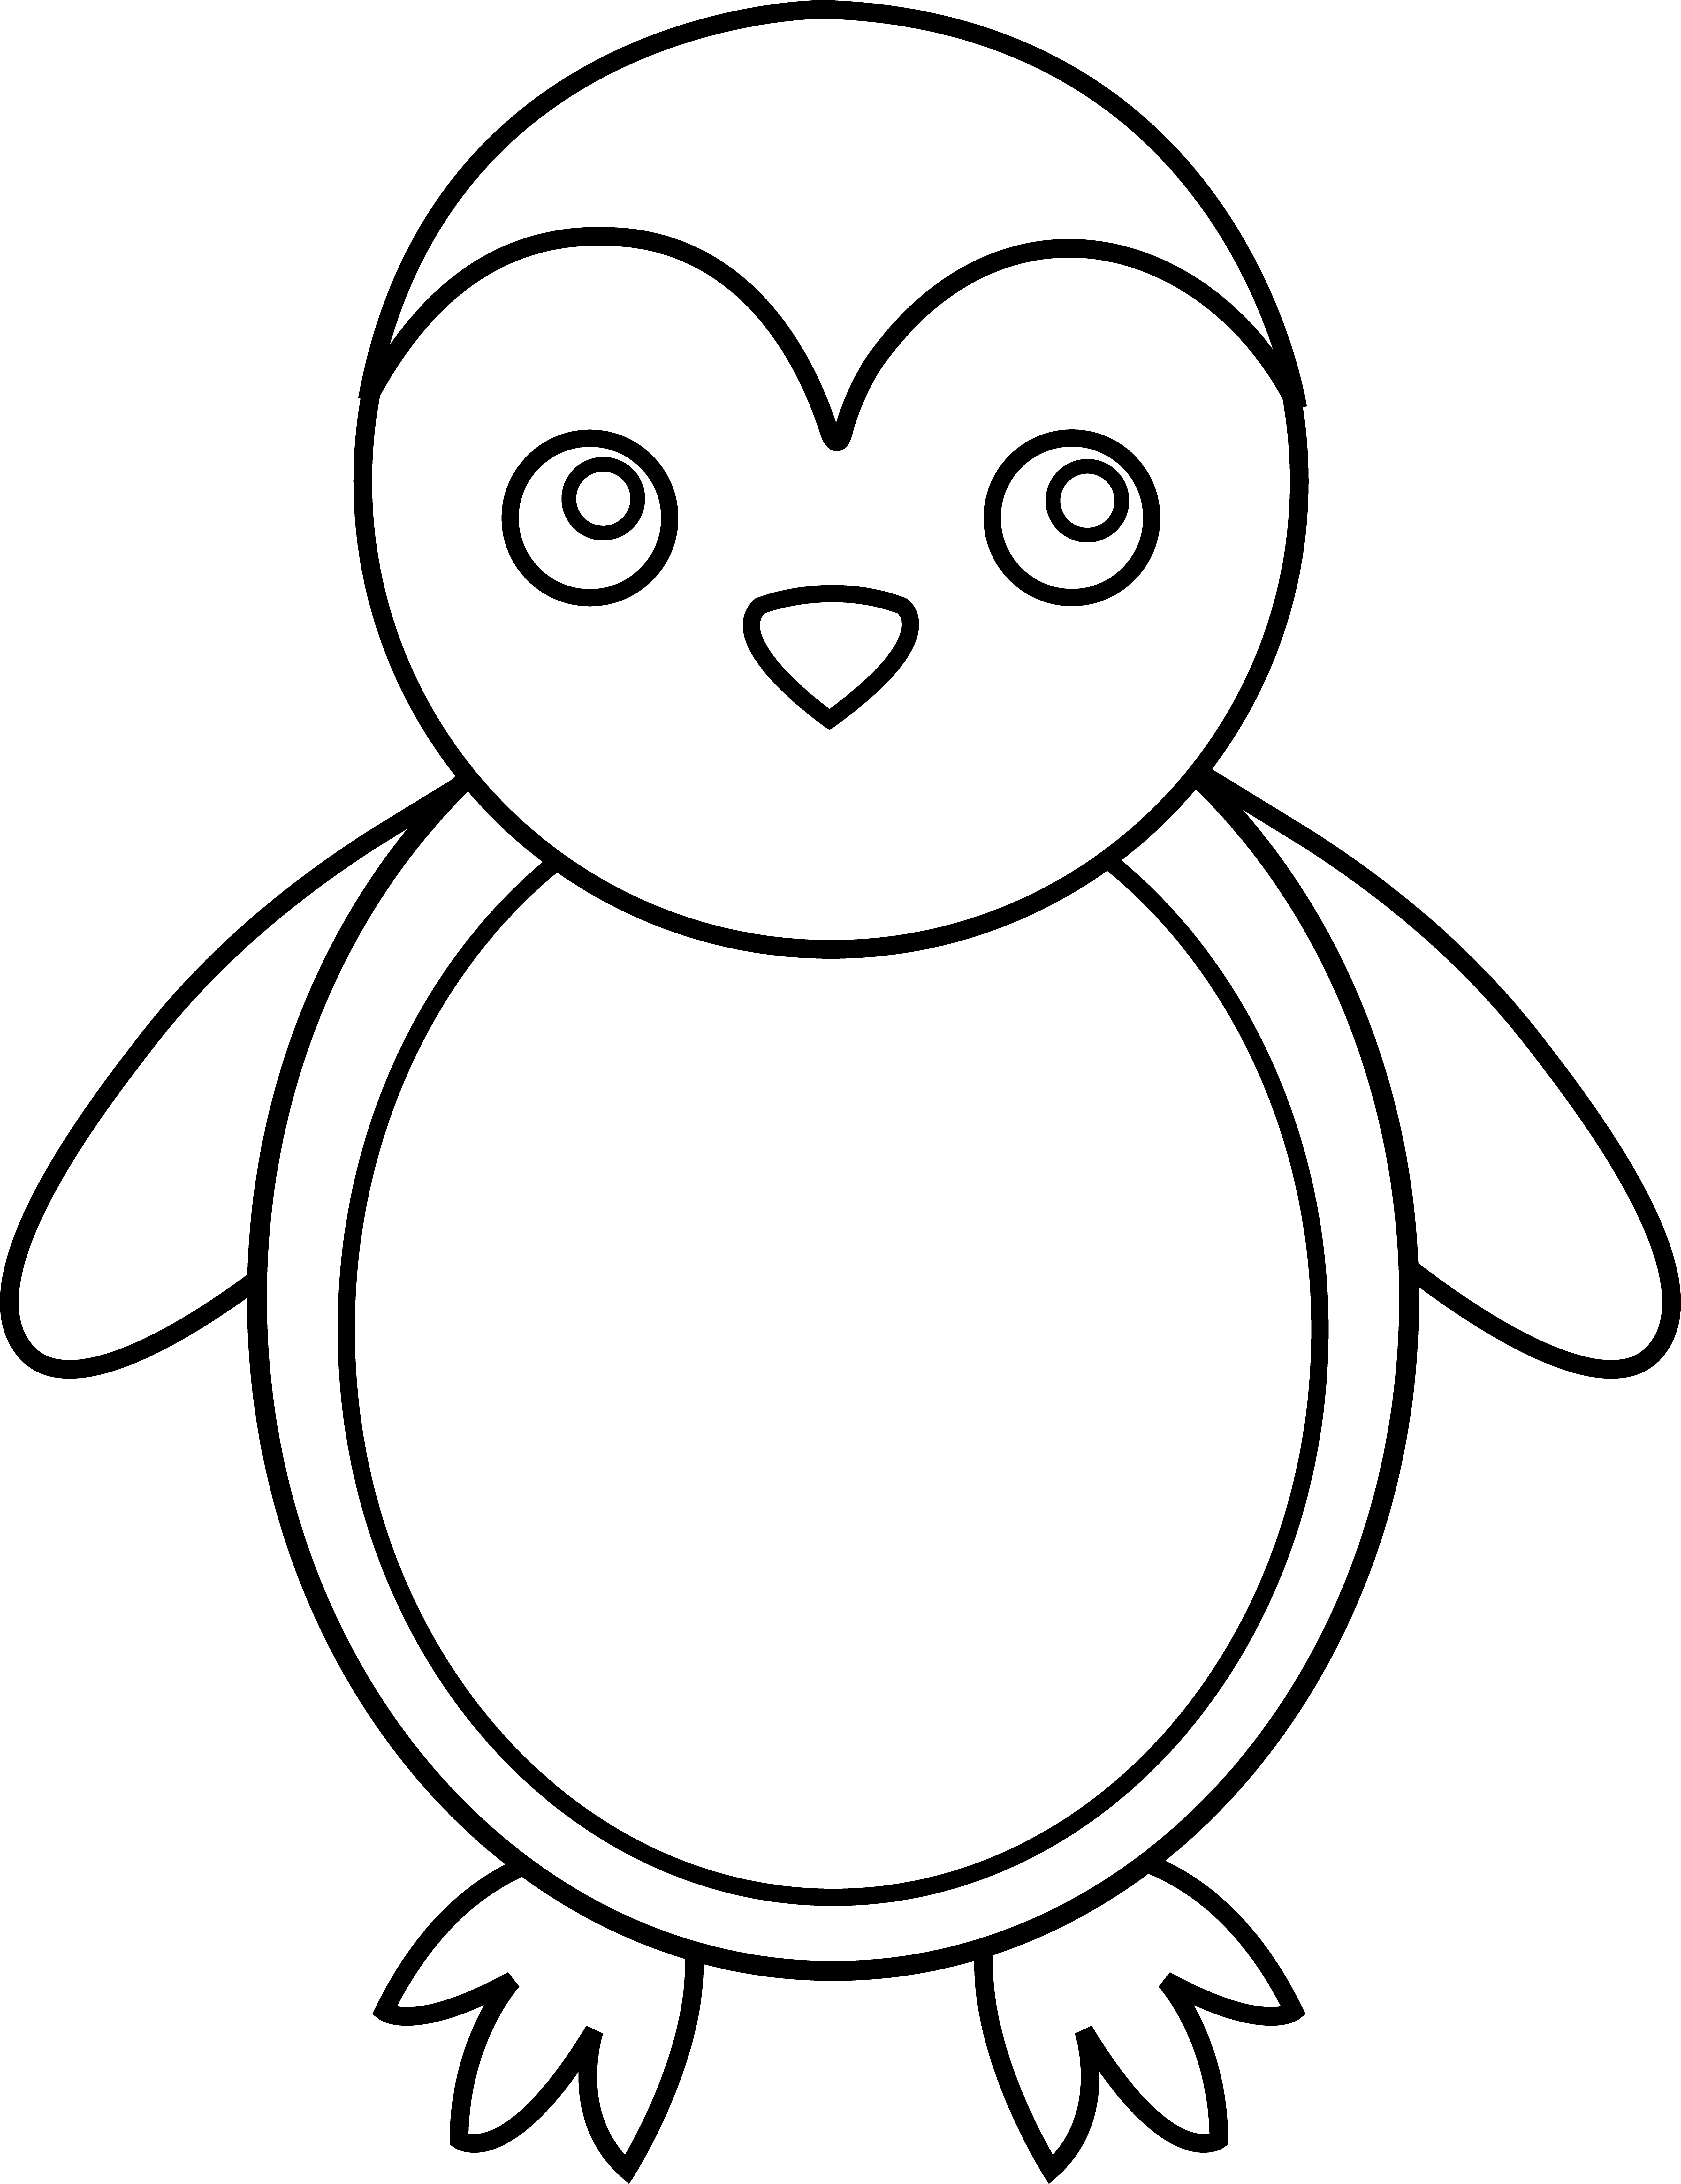 Clipart Animal Simple Line Drawing : Antarctica clipart cliparts